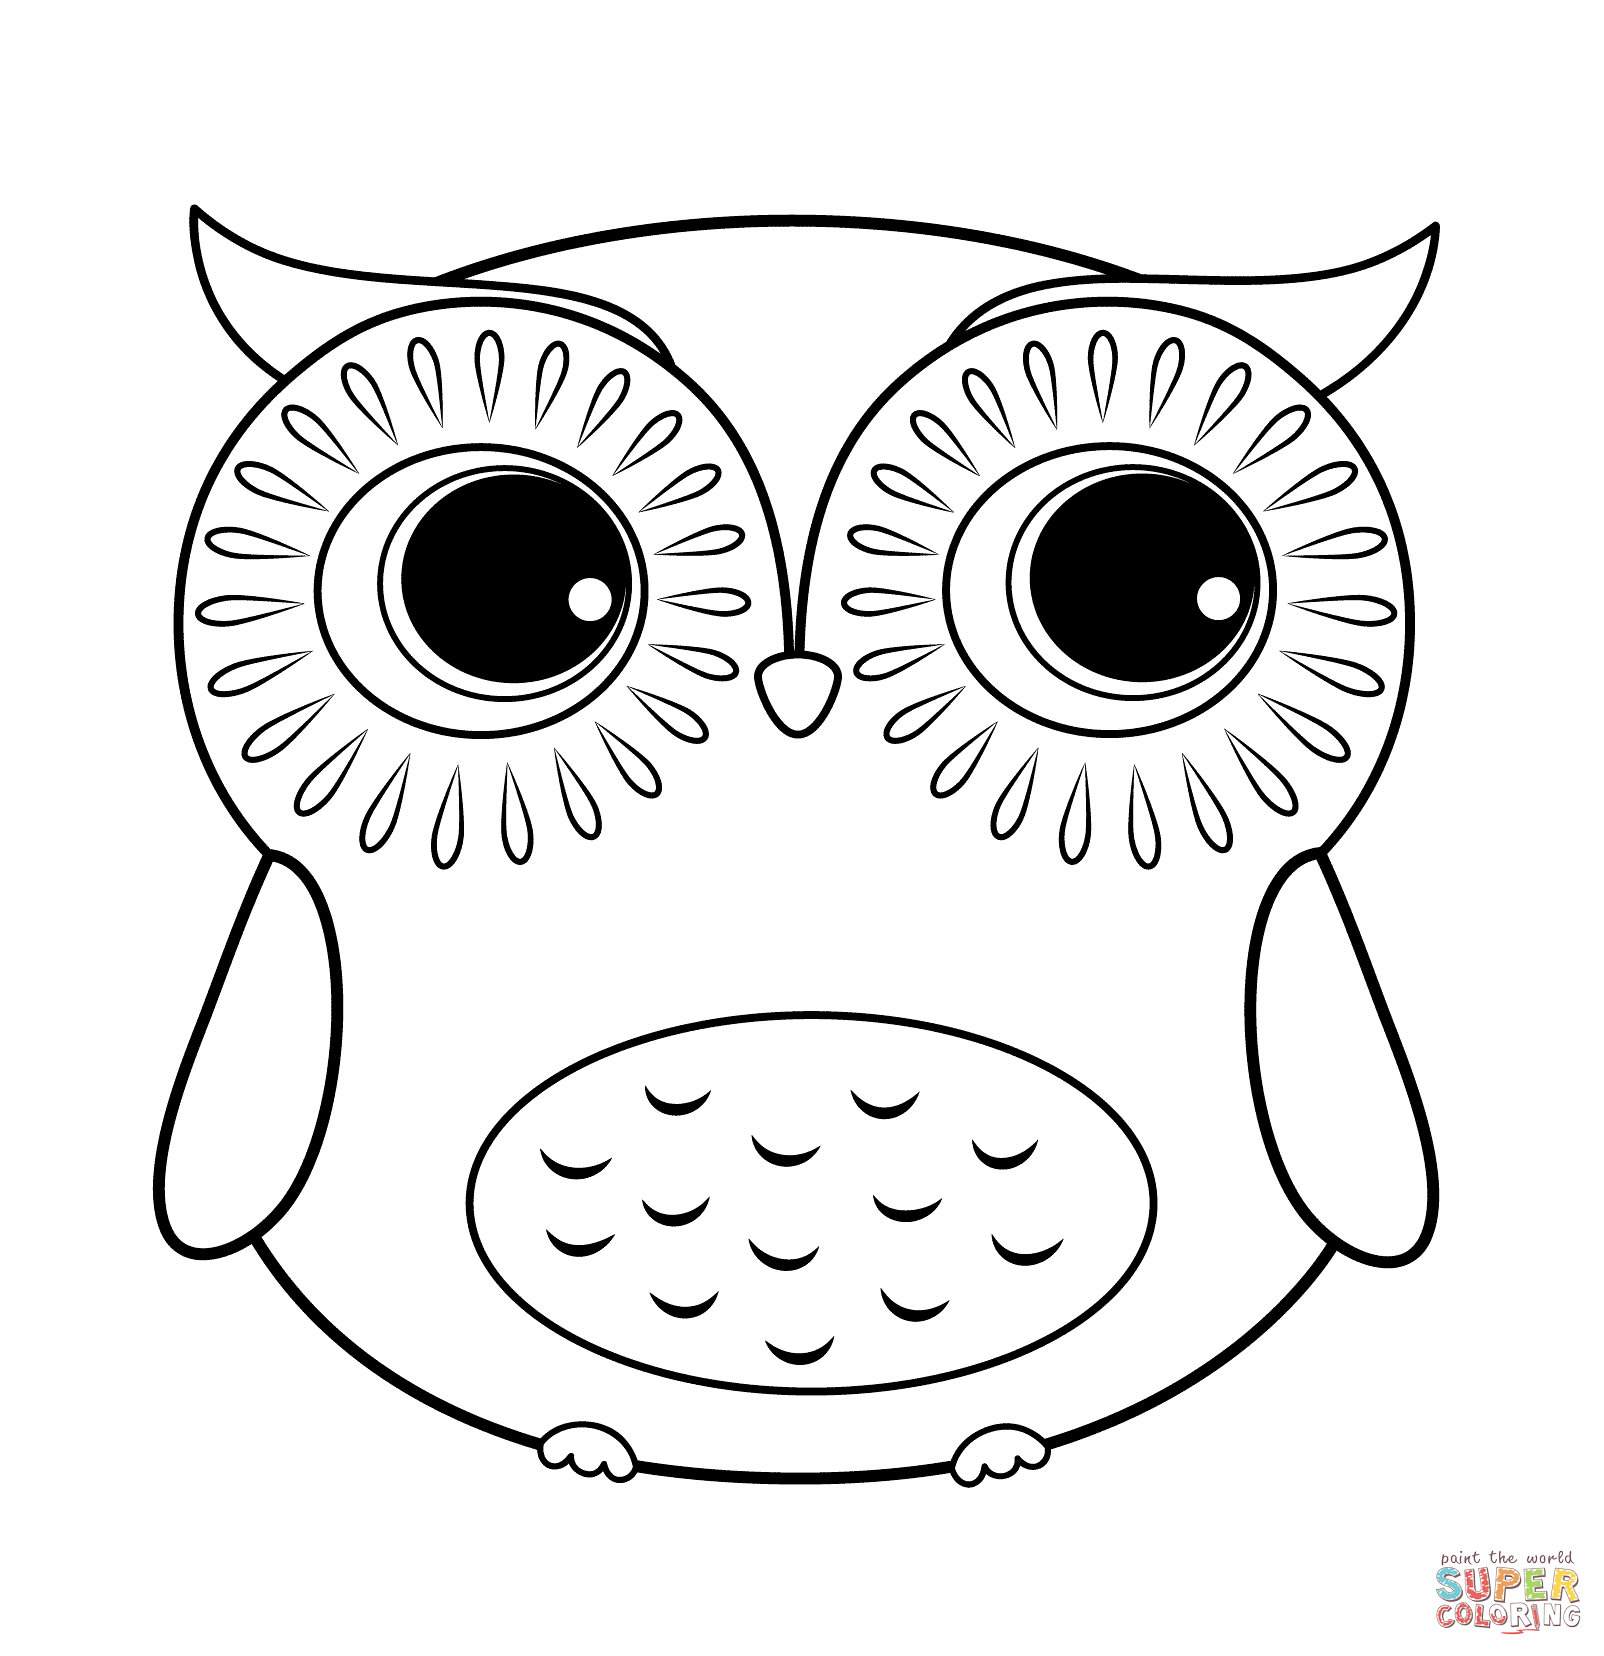 1604x1656 Easy Owl Coloring Page Free Coloring Page Printableowl Coloring